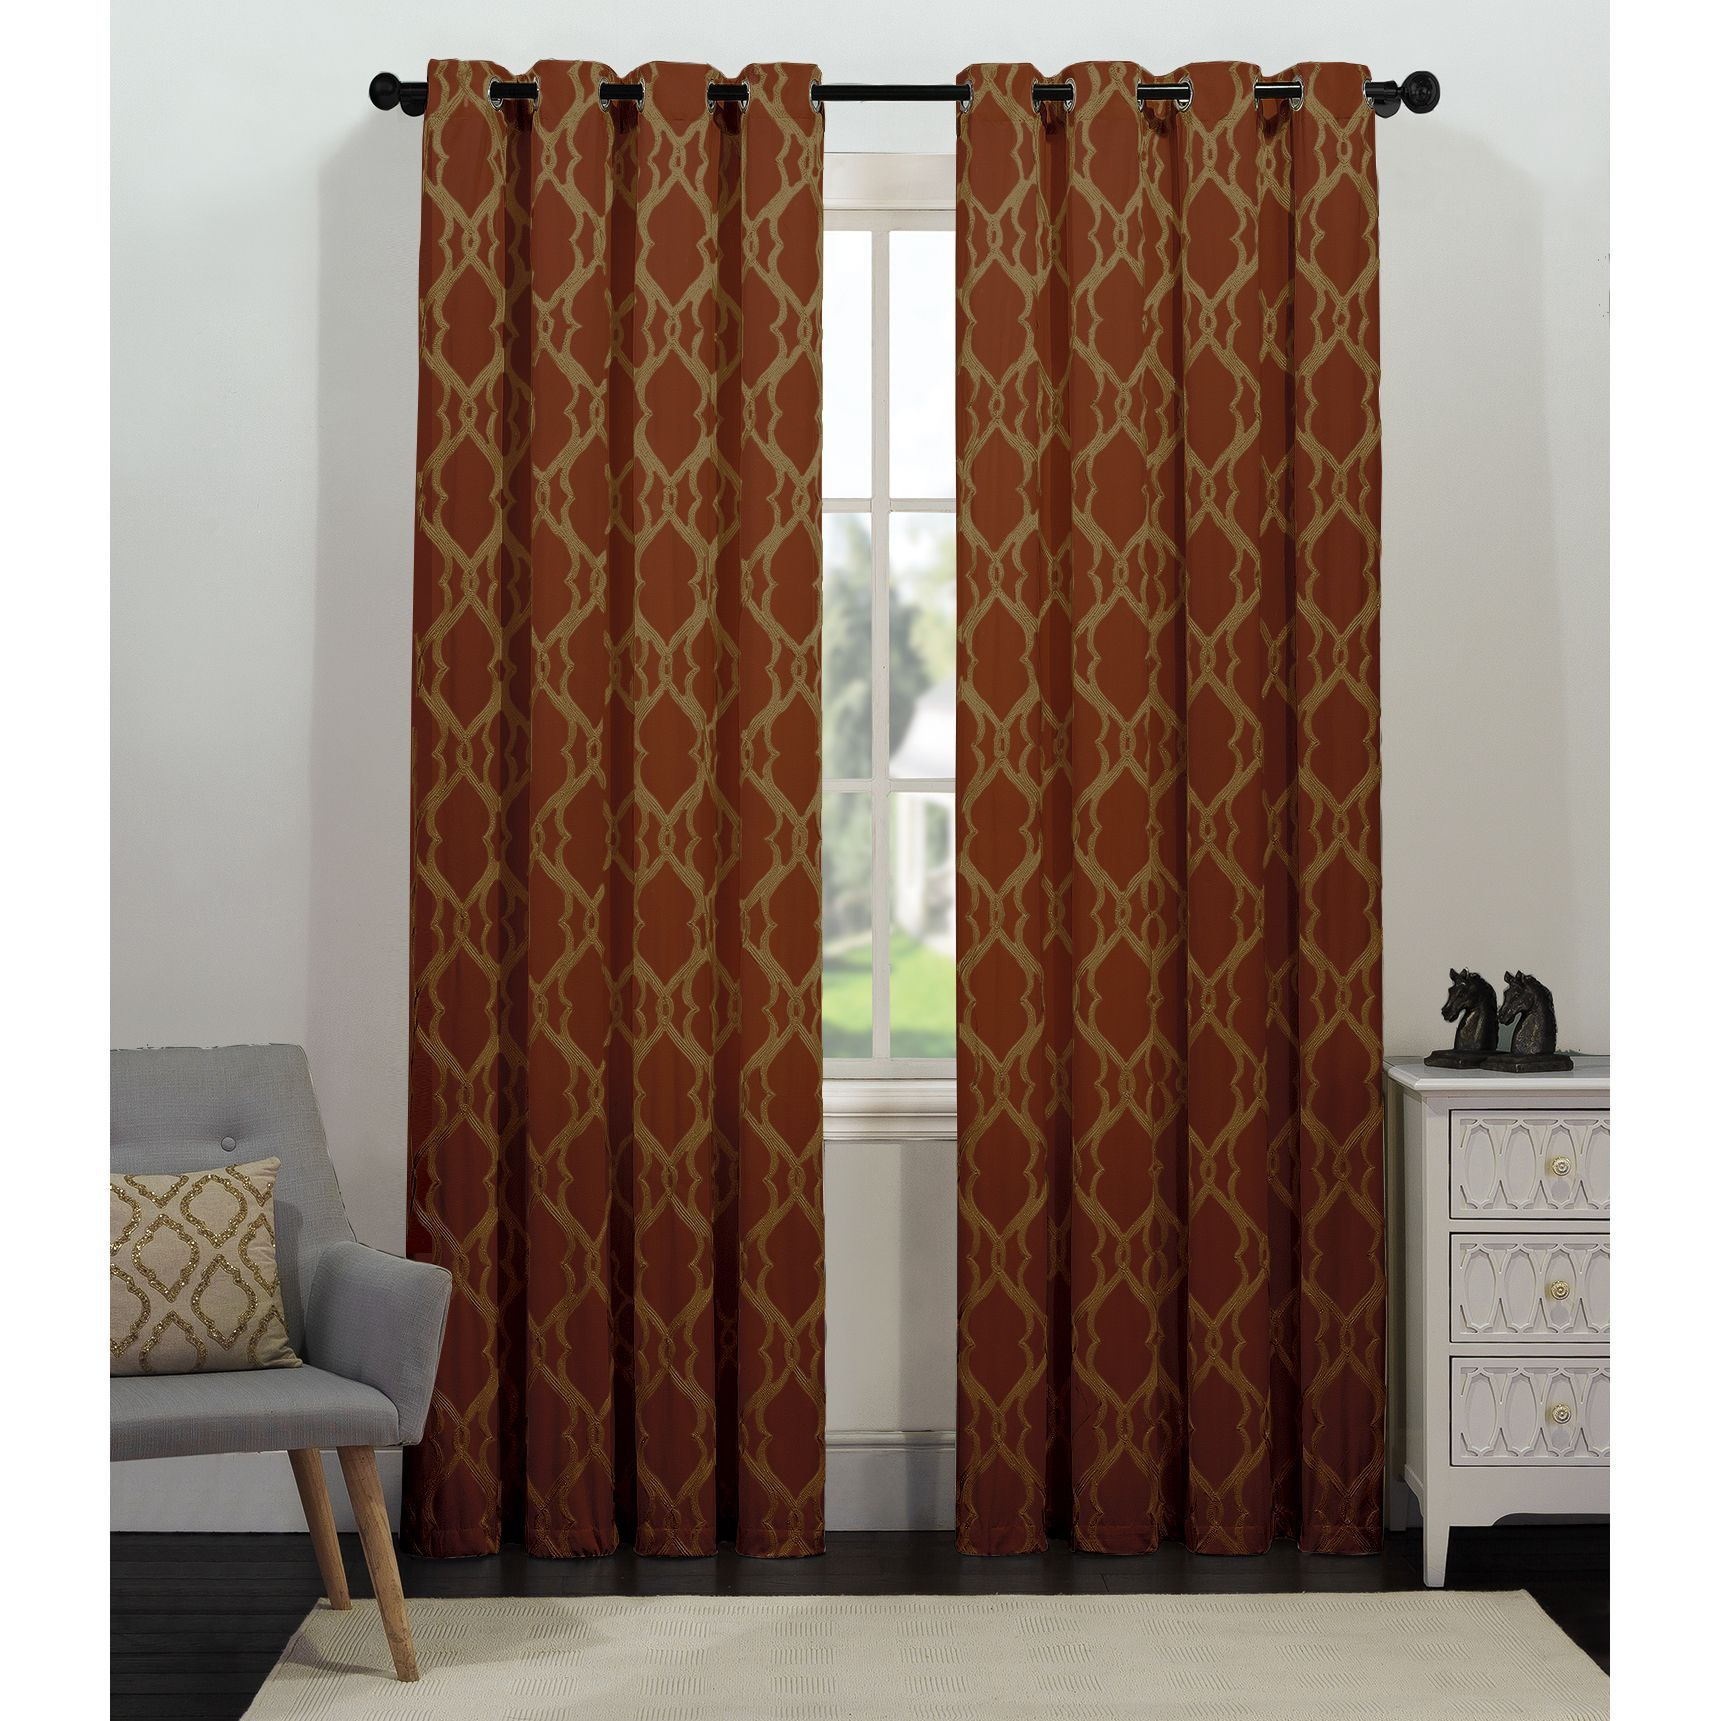 Artistic linen tangier grommettop window curtain panel products